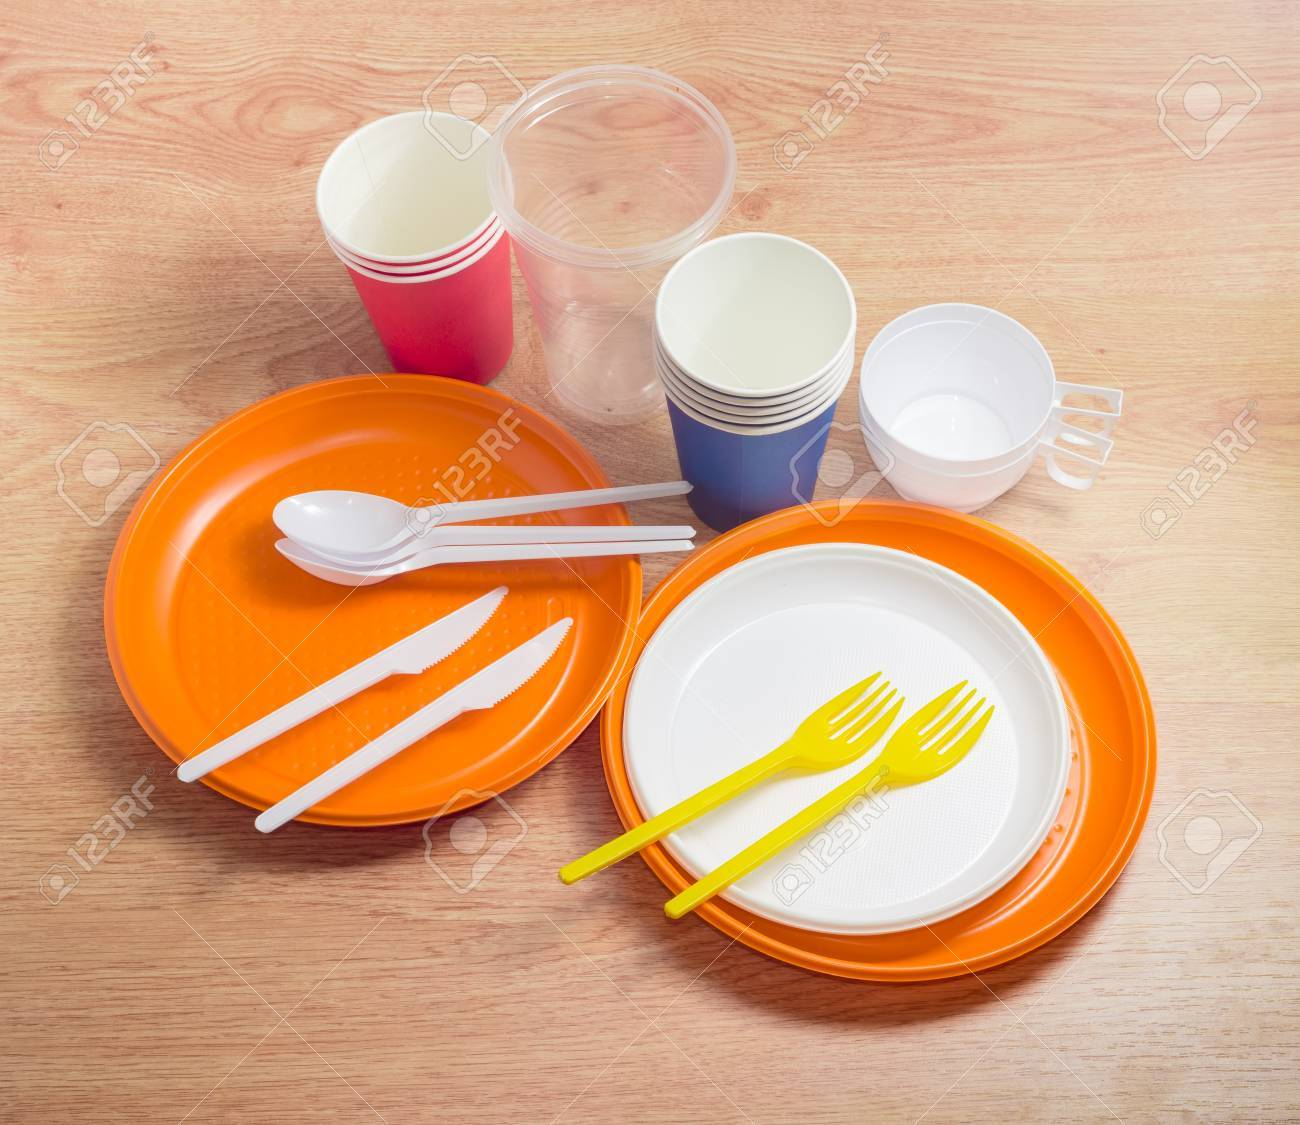 Orange and white disposable plastic plates different sizes plastic disposable forks spoons and knives & Orange And White Disposable Plastic Plates Different Sizes Plastic ...